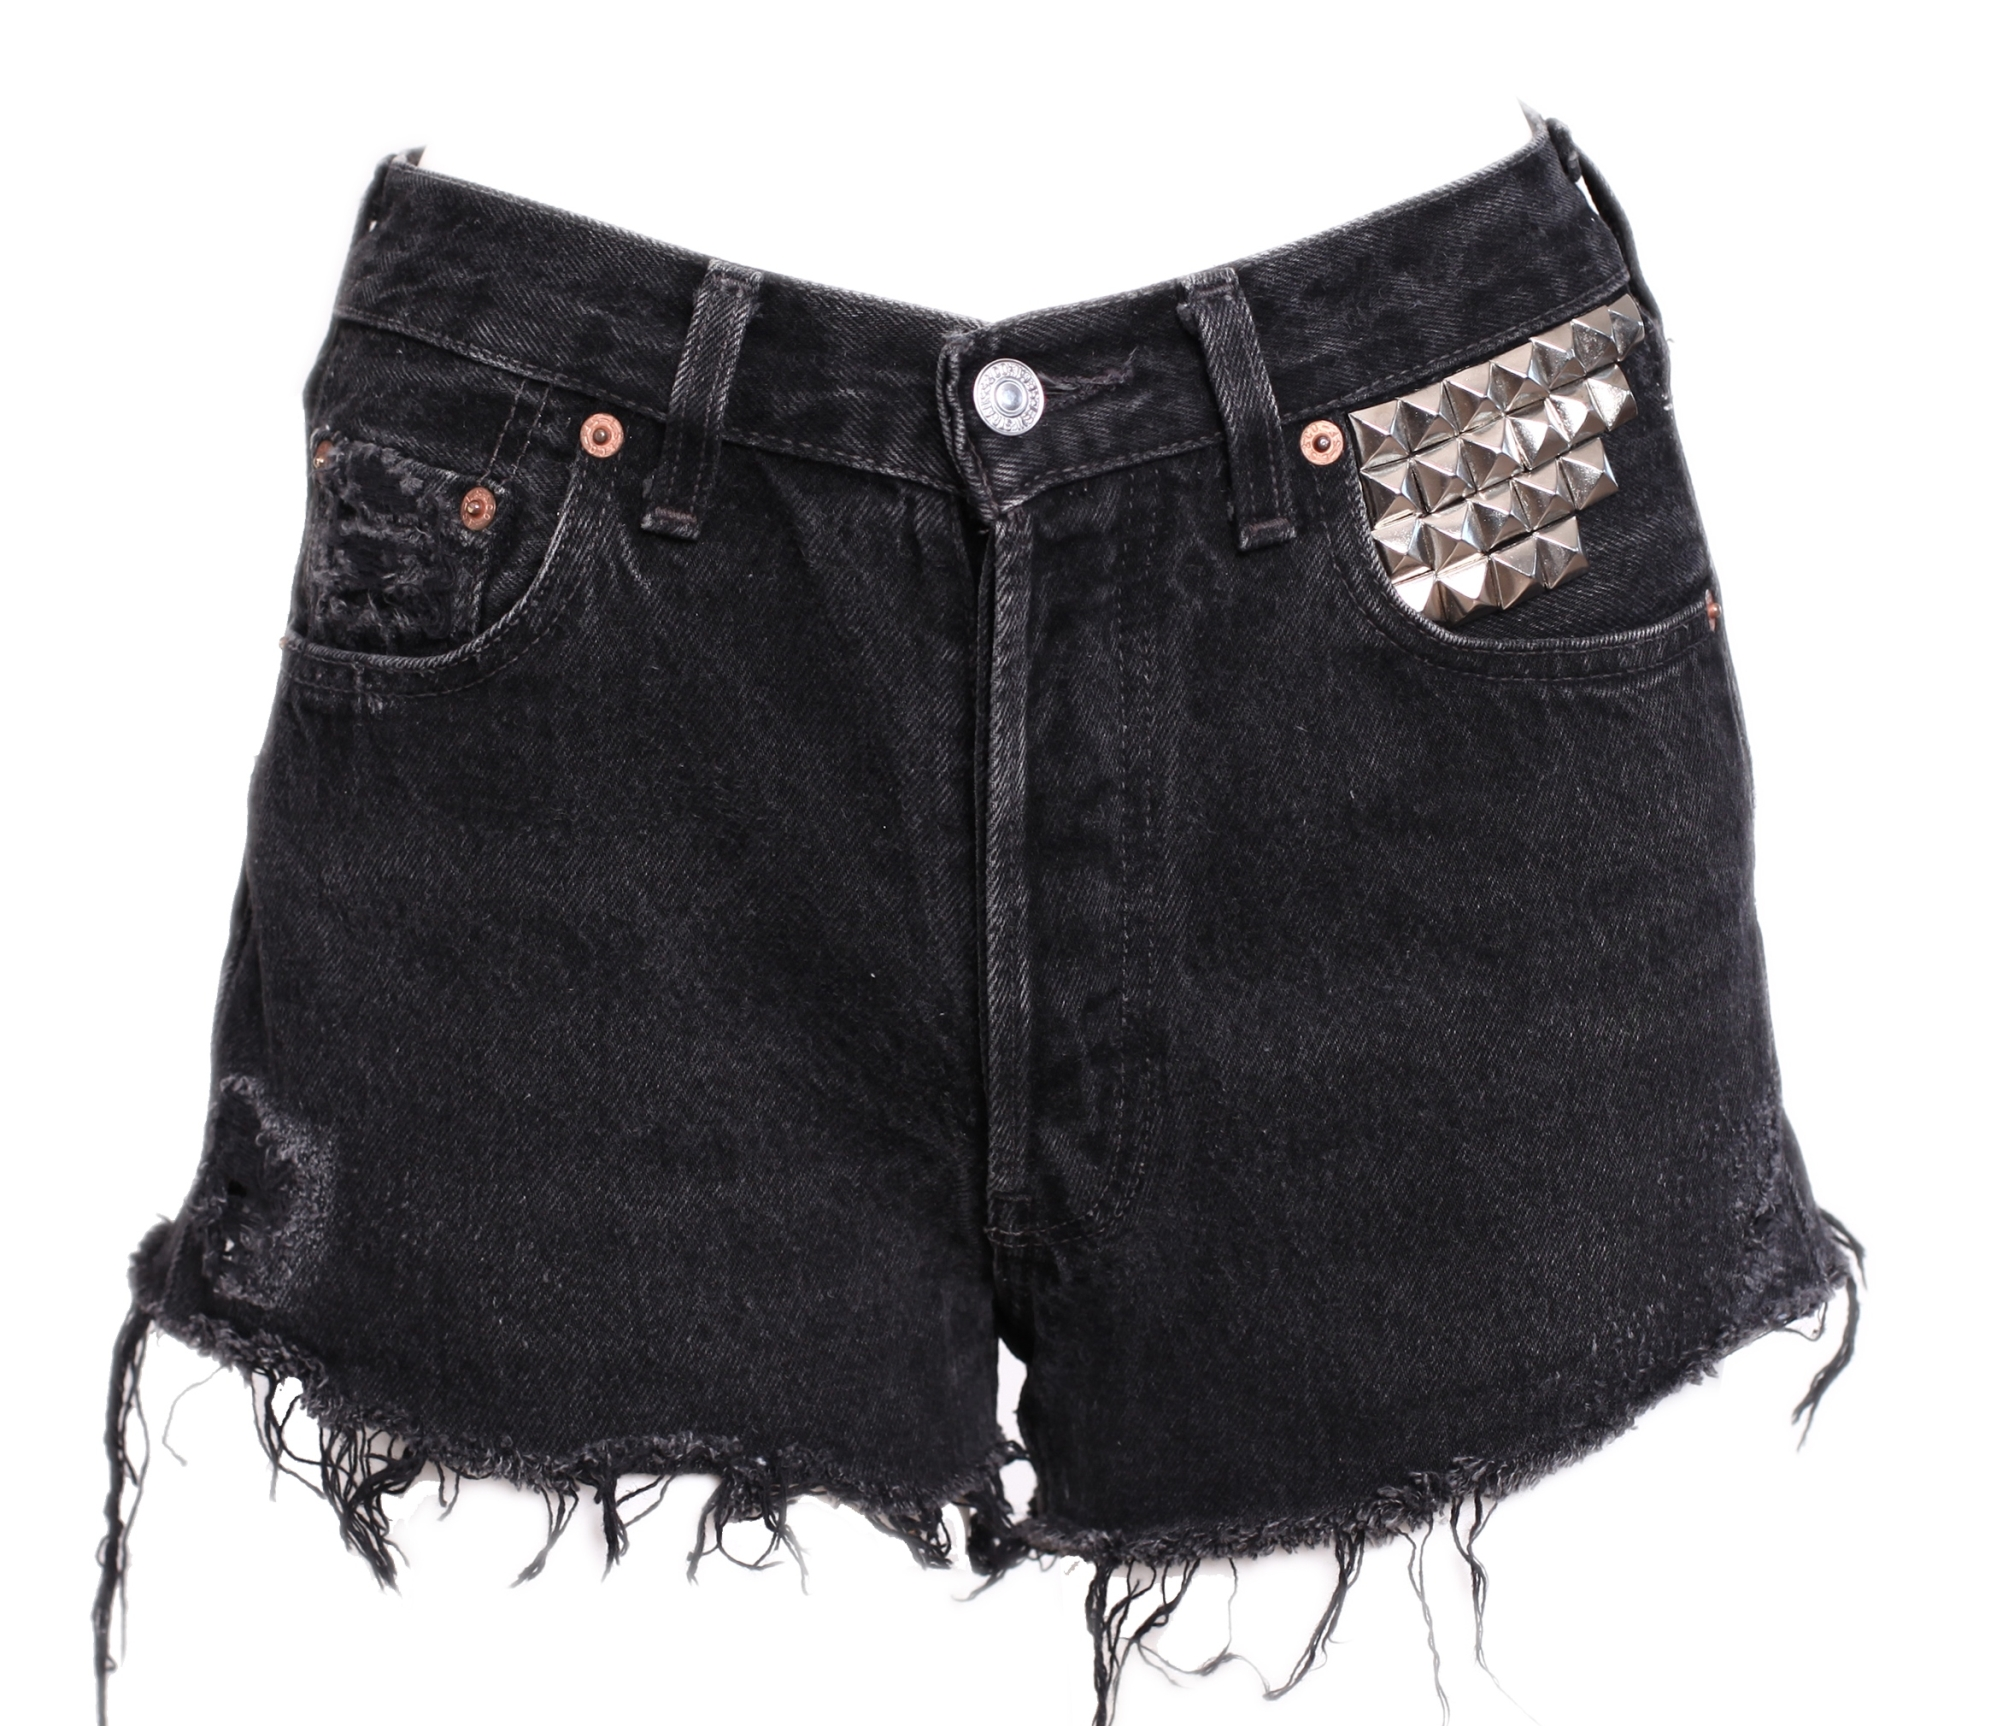 TUCSON vintage used high waisted levis black studded denim shorts ...